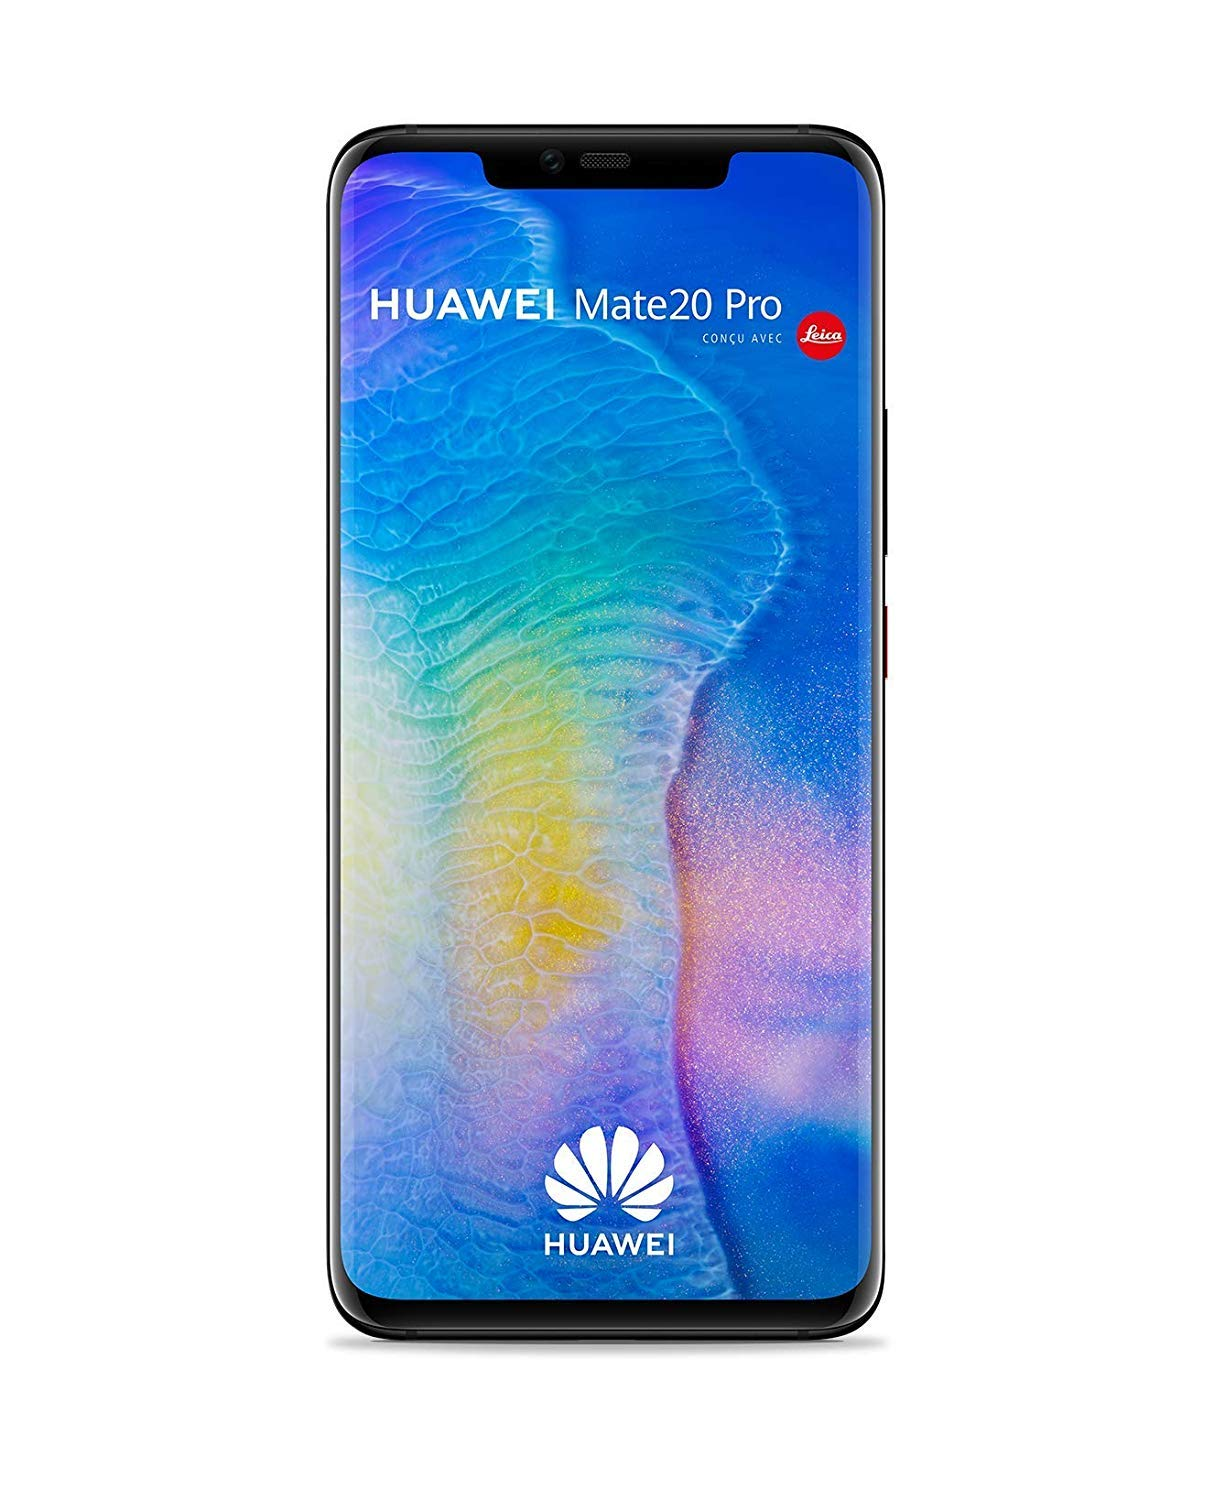 d1247e89ffe5a7 Amazon.com: Huawei Mate 20 Pro (GSM Only, No CDMA) Unlocked 6GB RAM 128GB  Storage Single Sim LYA-L09 - International Version/No Warranty - Black:  Cell ...